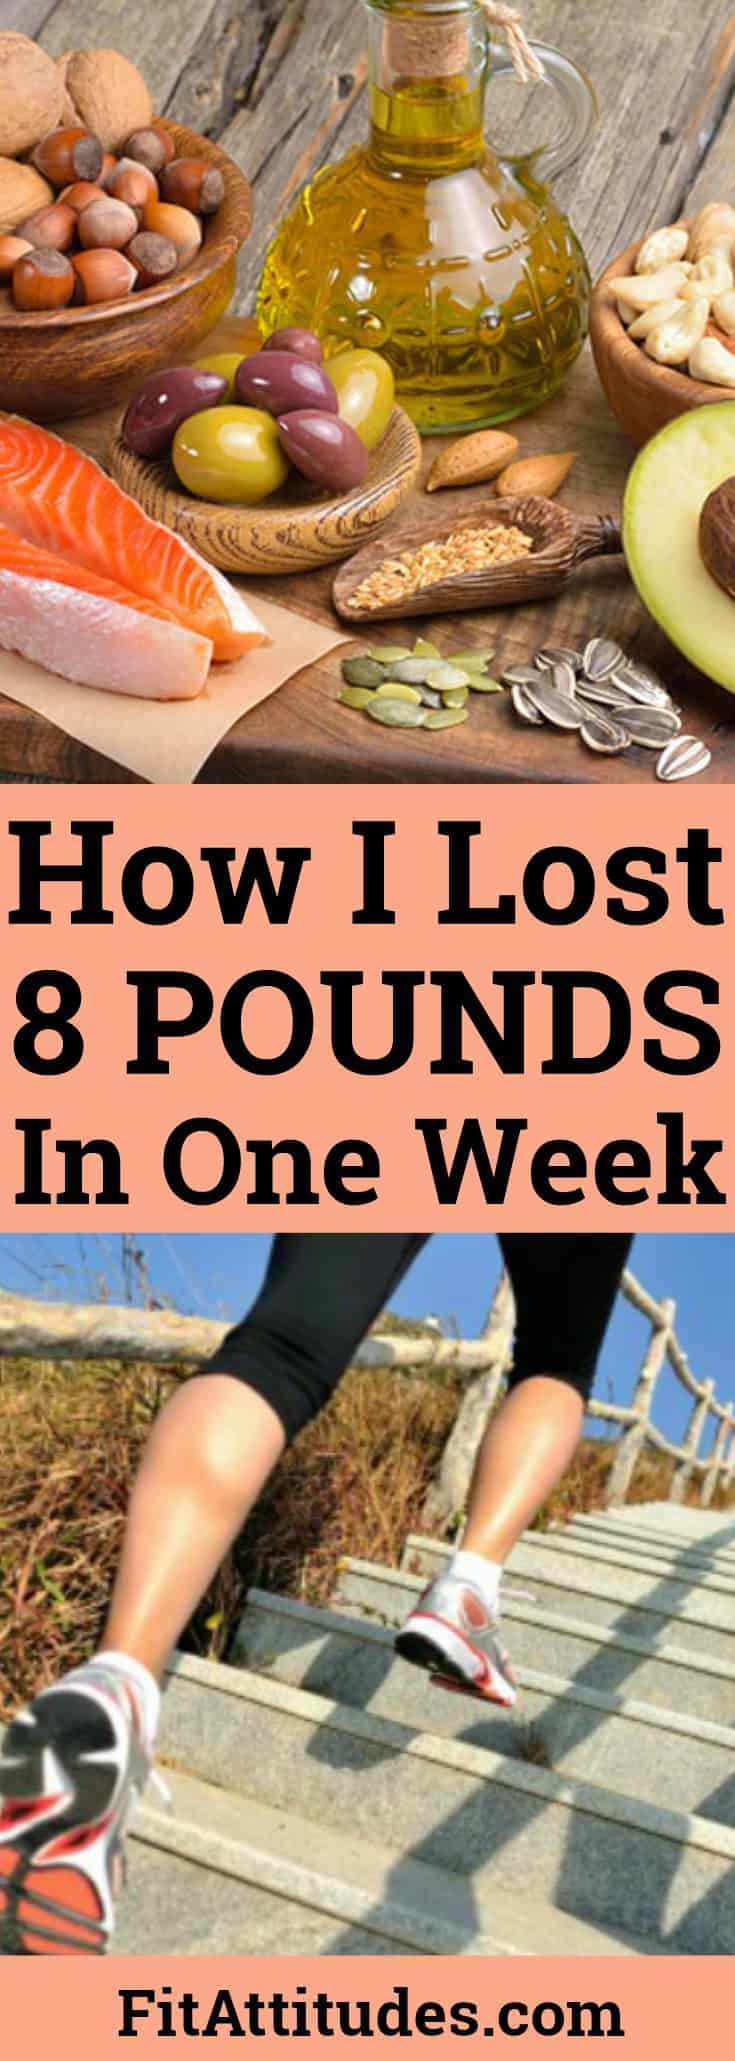 Looking for a way to take the pounds off quickly?